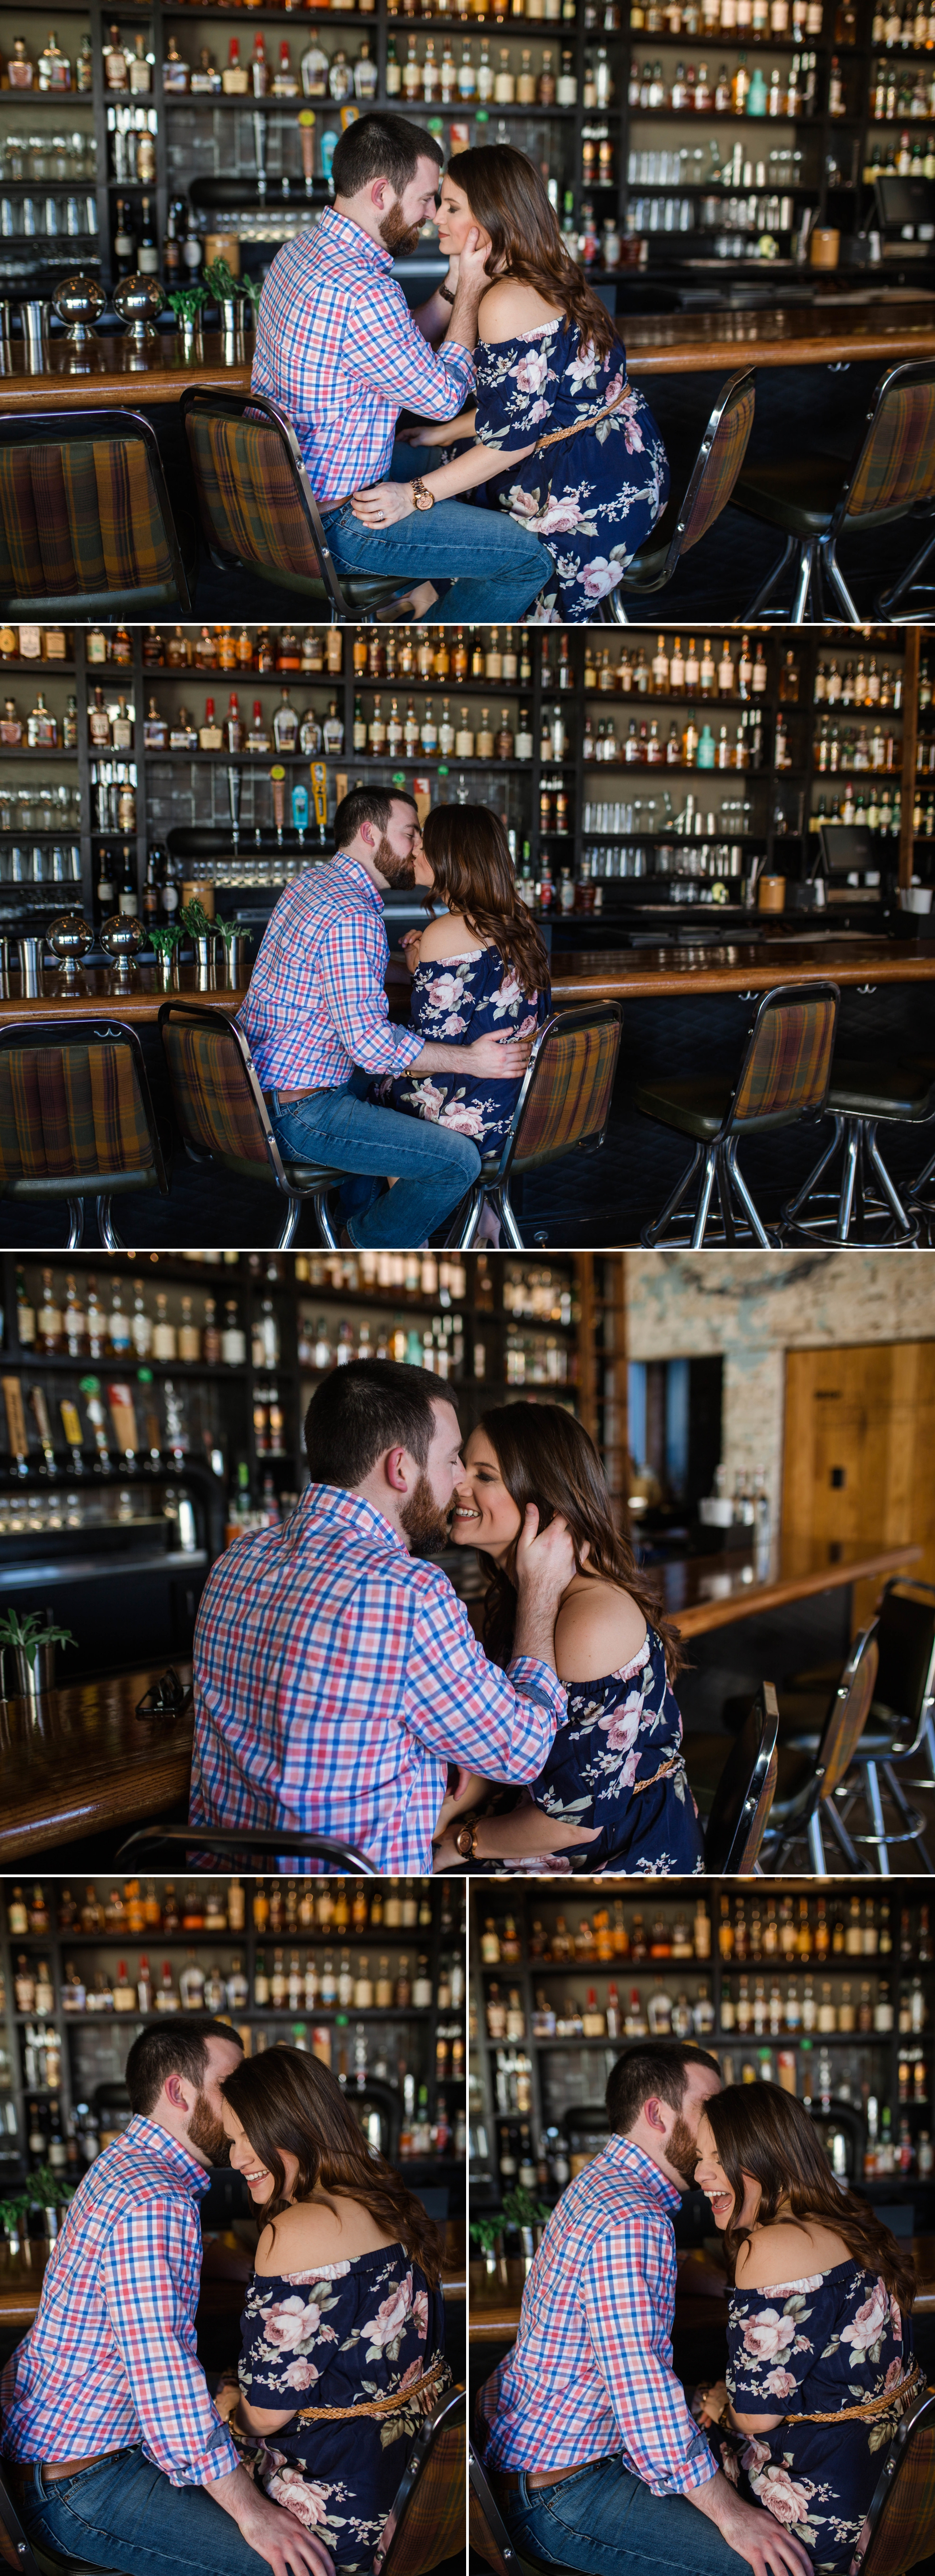 Clare and Wallace reuniting at Dram & Draught, the Bar at which they had first met, for their engagement Session